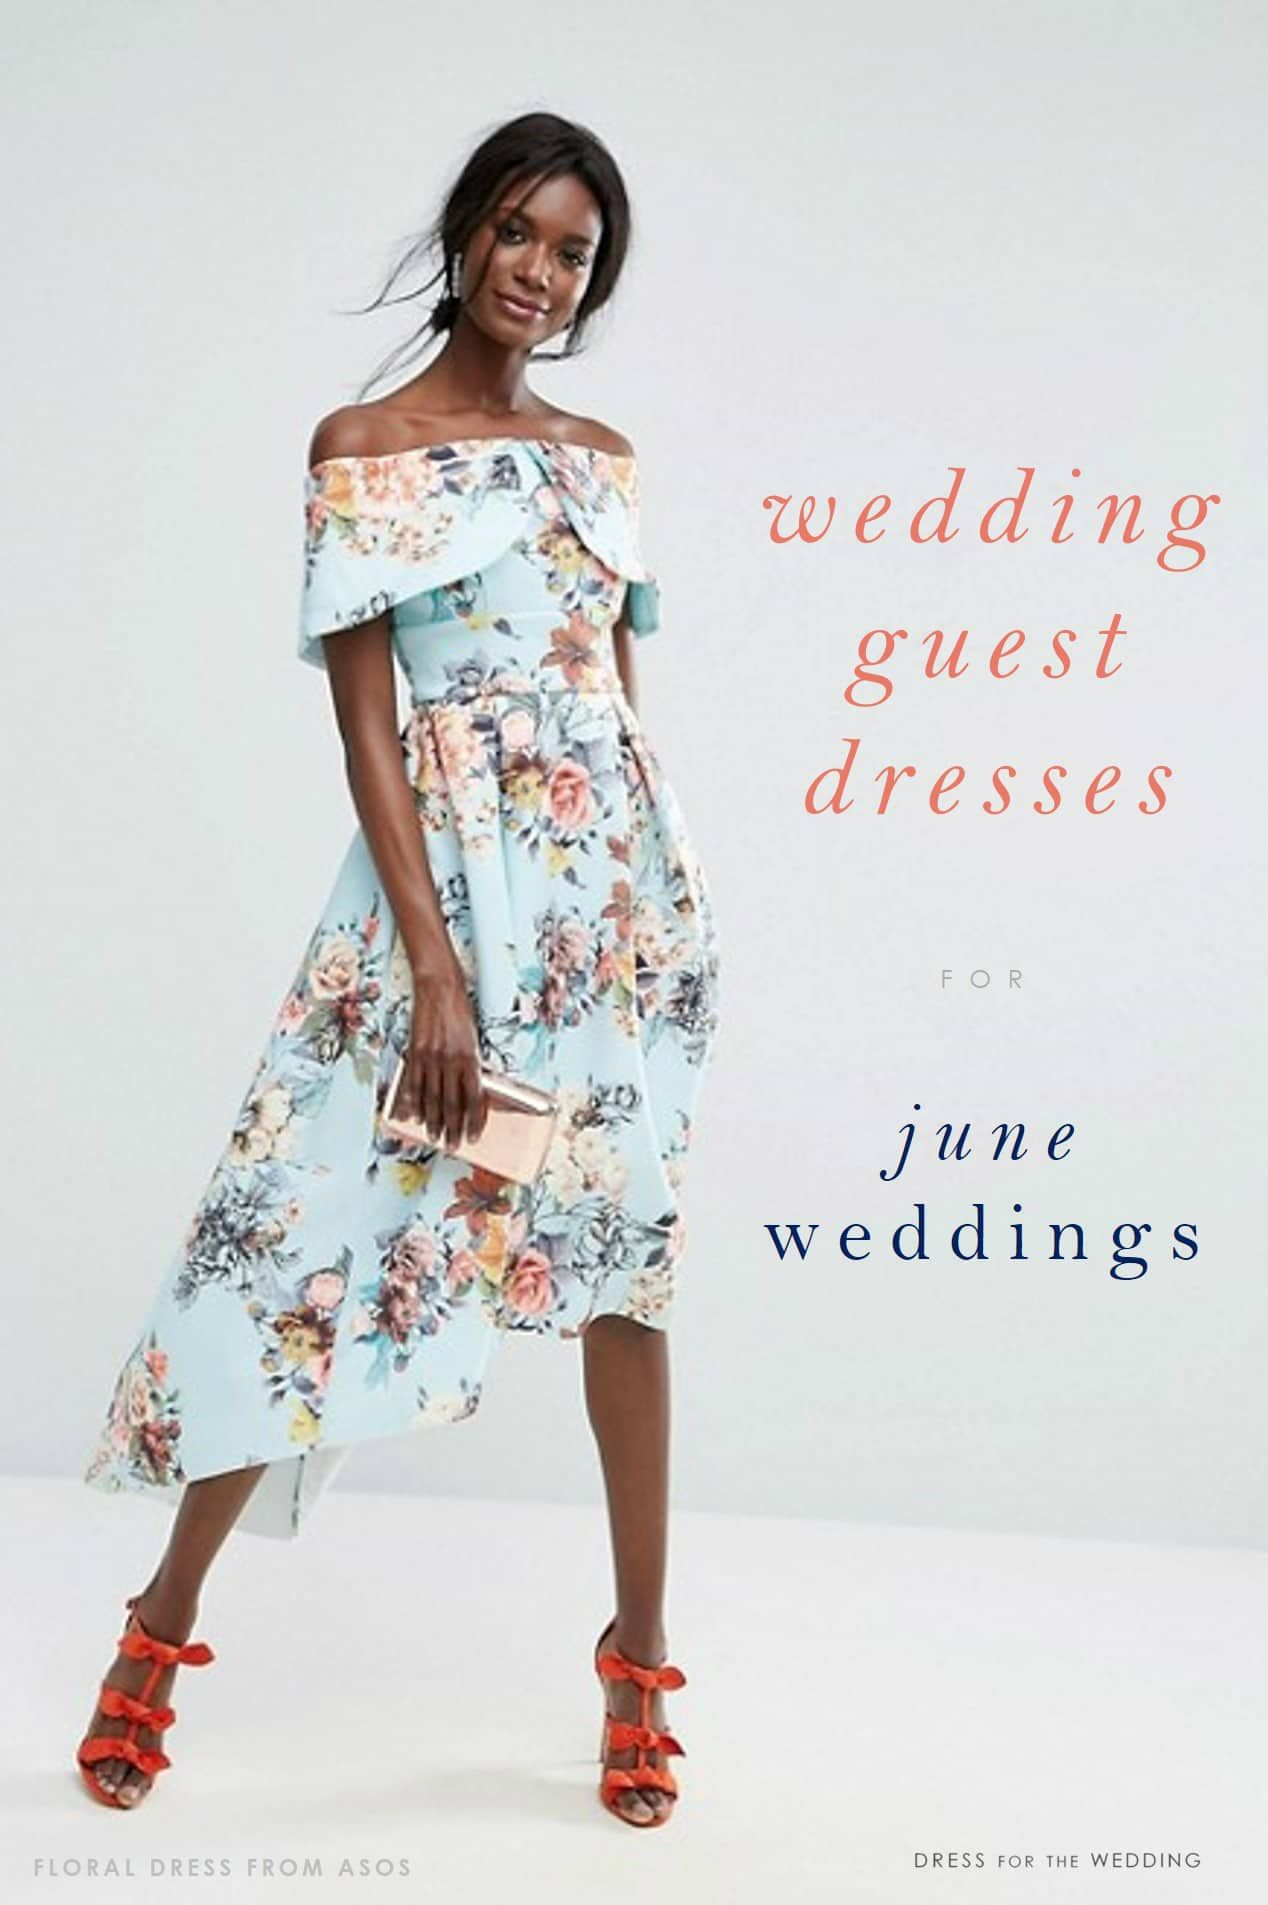 Dress to wear to a wedding as a guest in june   OnTrend Dresses for June Wedding Guests  Wedding outfit